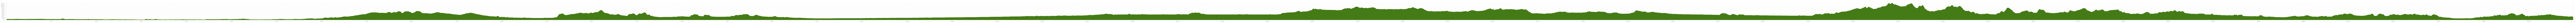 Elevation profile Cycle Tour All around Germany - Part Aachen - Dresden